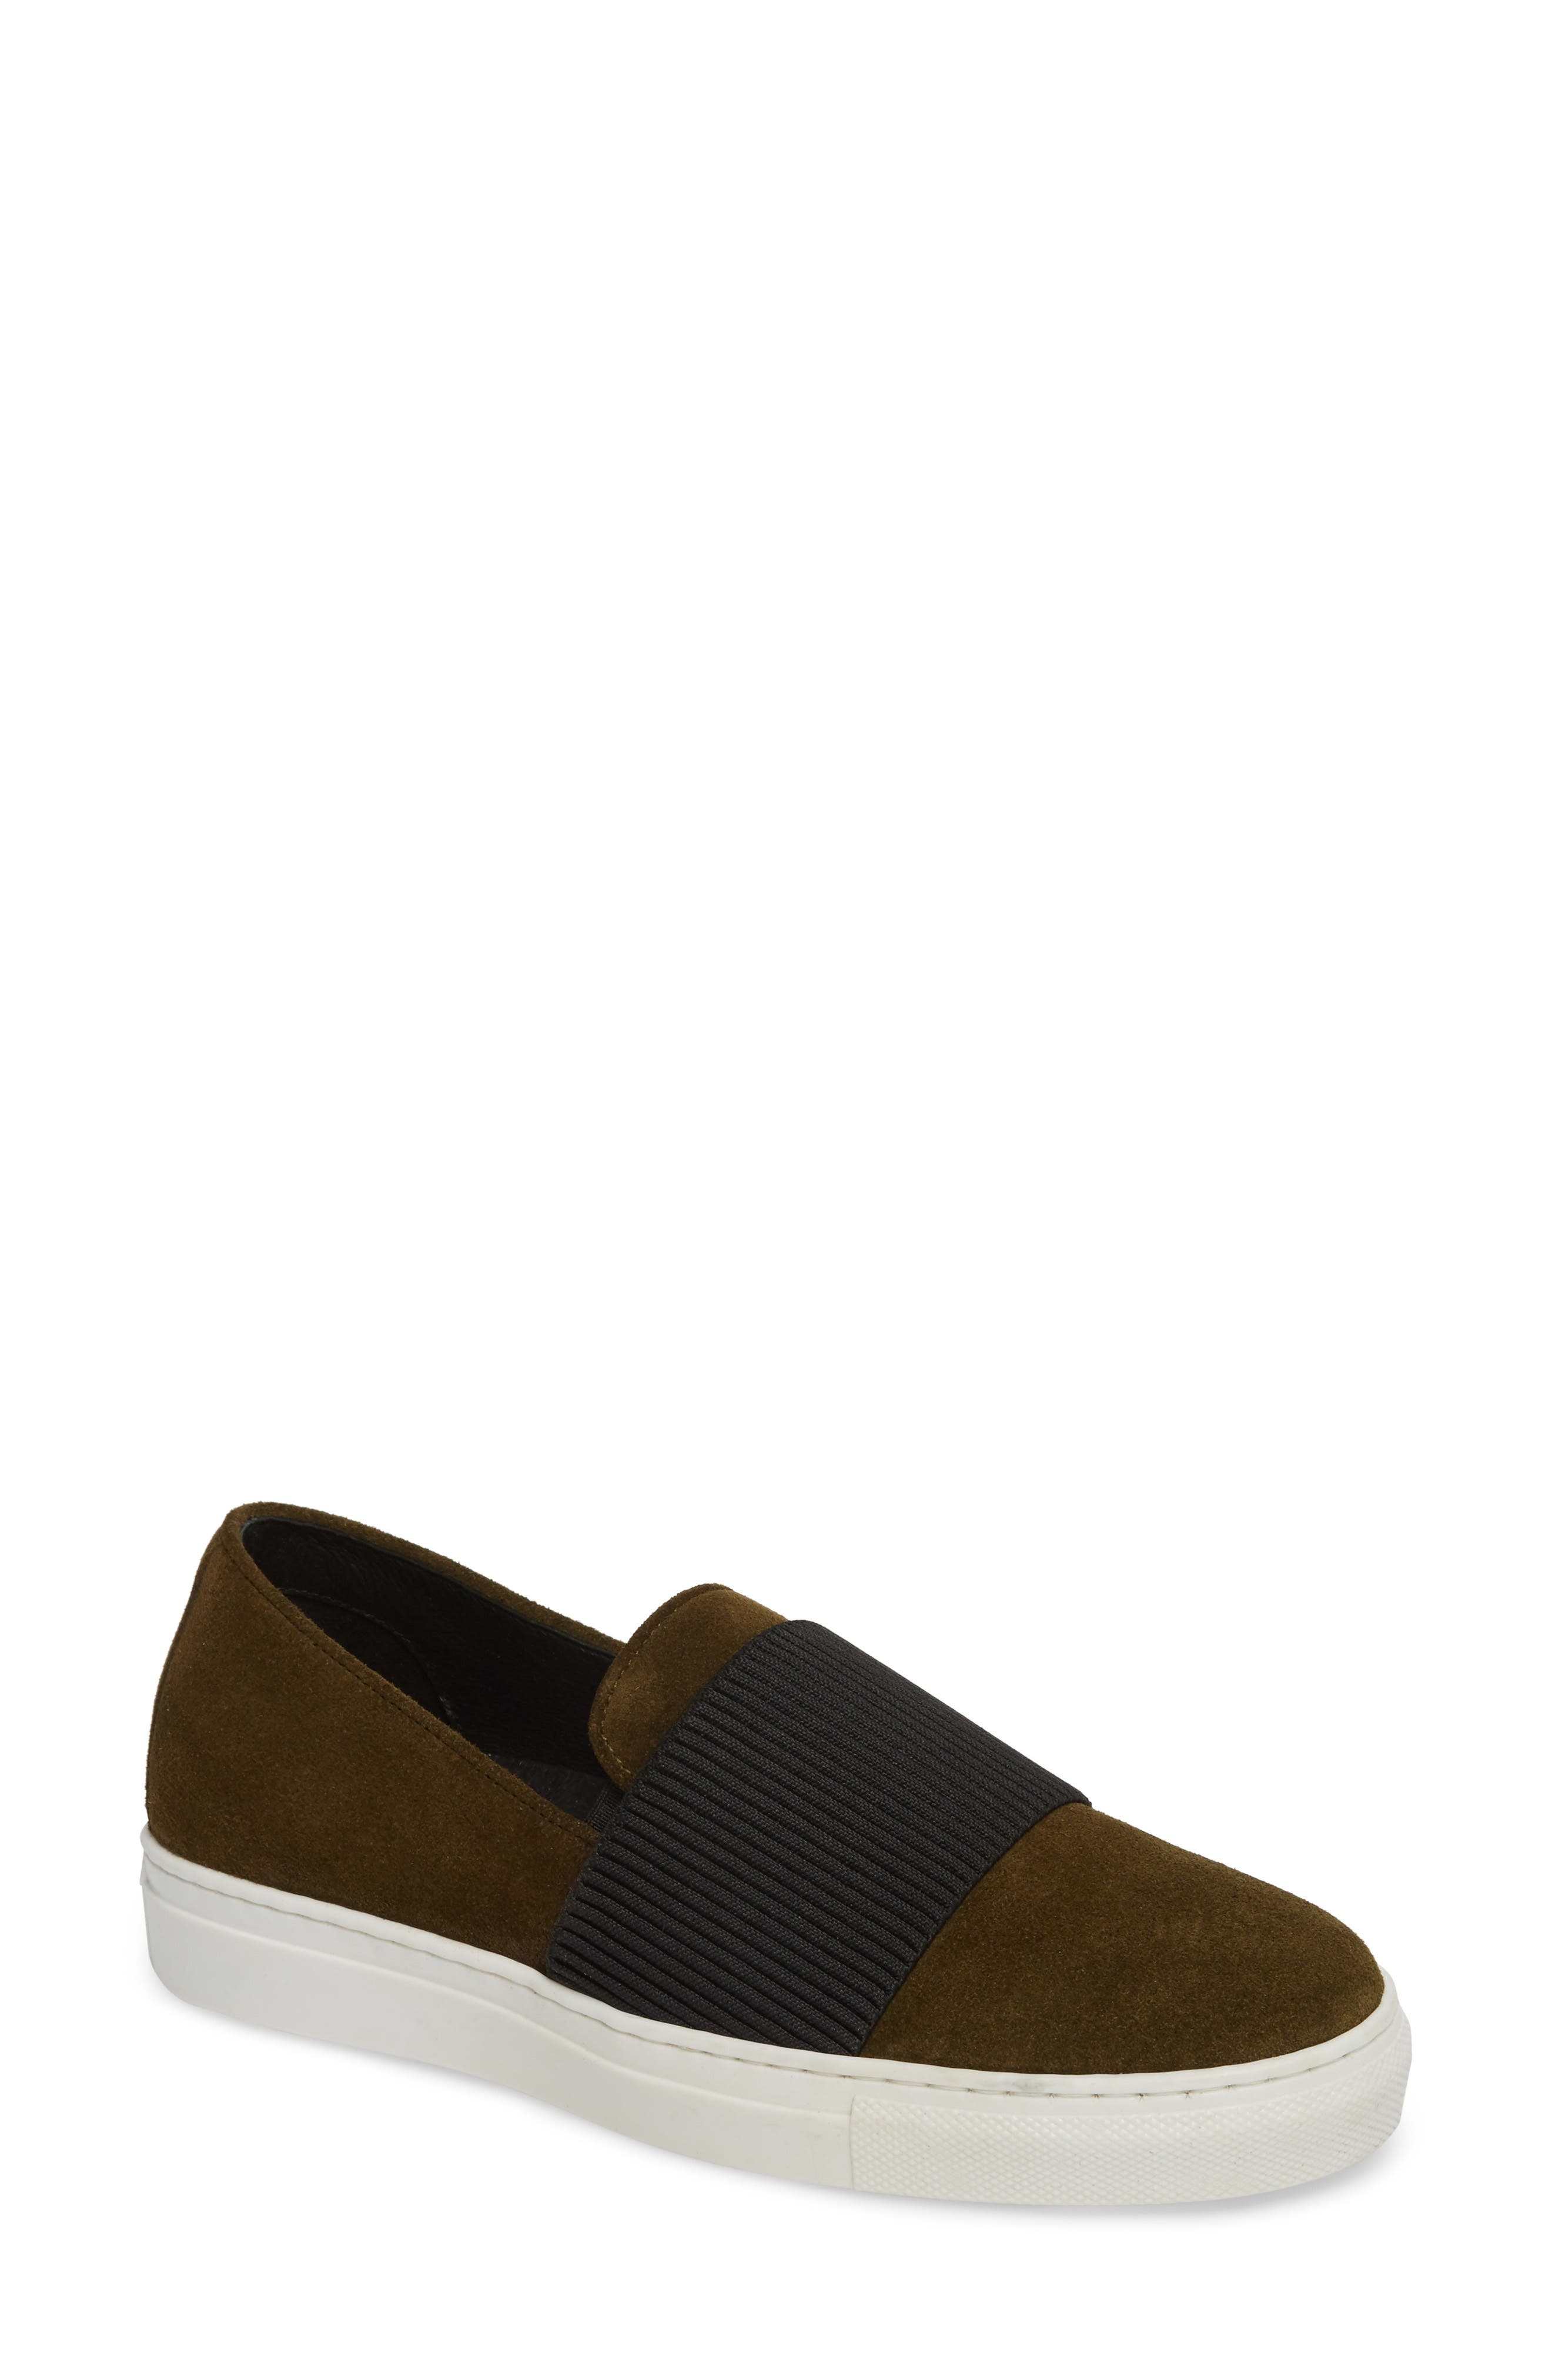 Otto Slip-On Sneaker,                             Main thumbnail 1, color,                             MILITARY PRINT SUEDE